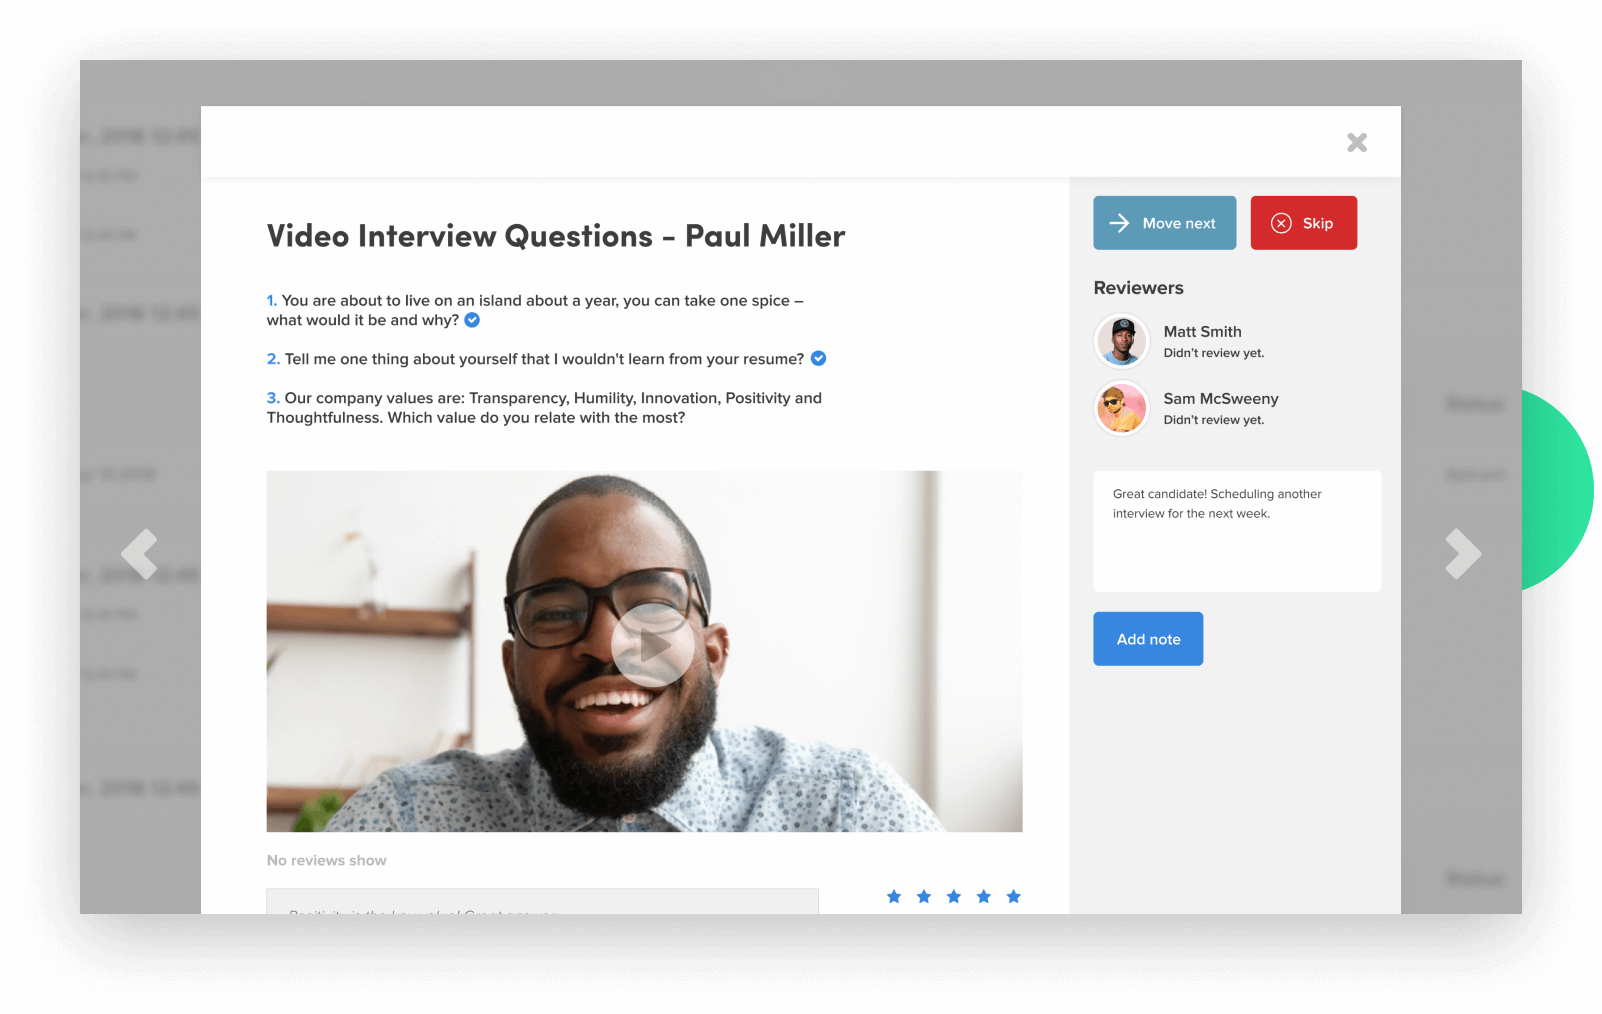 Interview Management and Video Interviewing